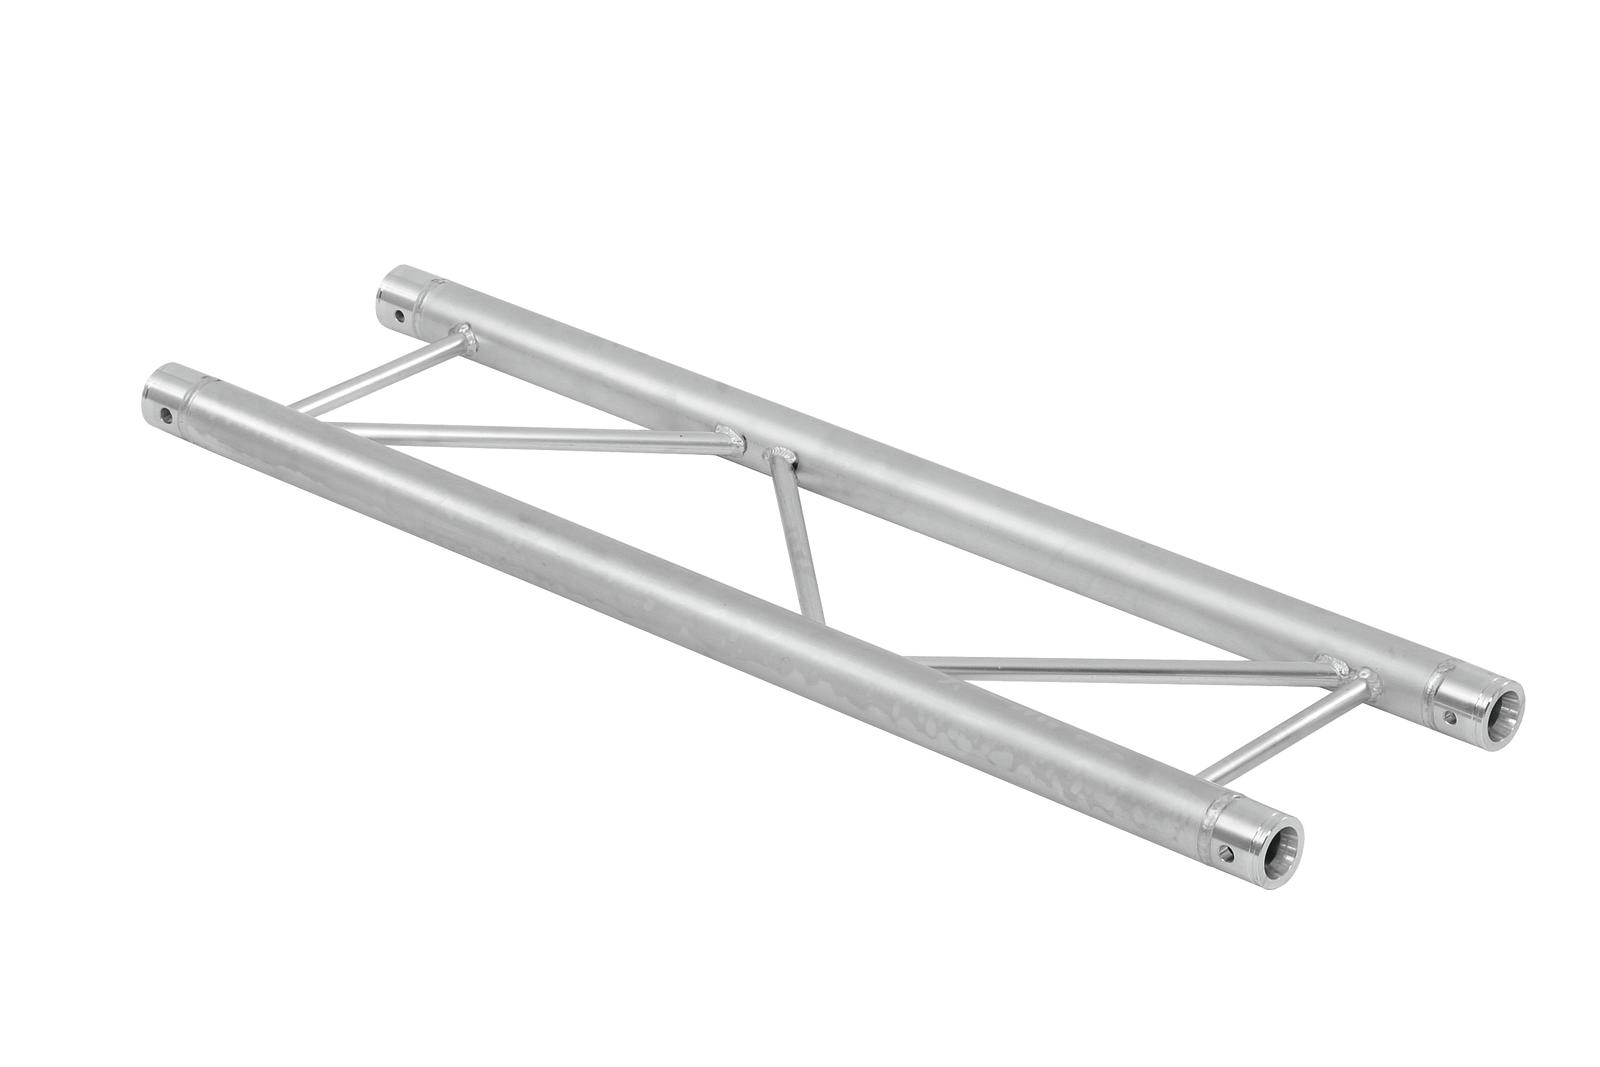 ALUTRUSS BILOCK E-GL22 1000 a 2 vie traverse